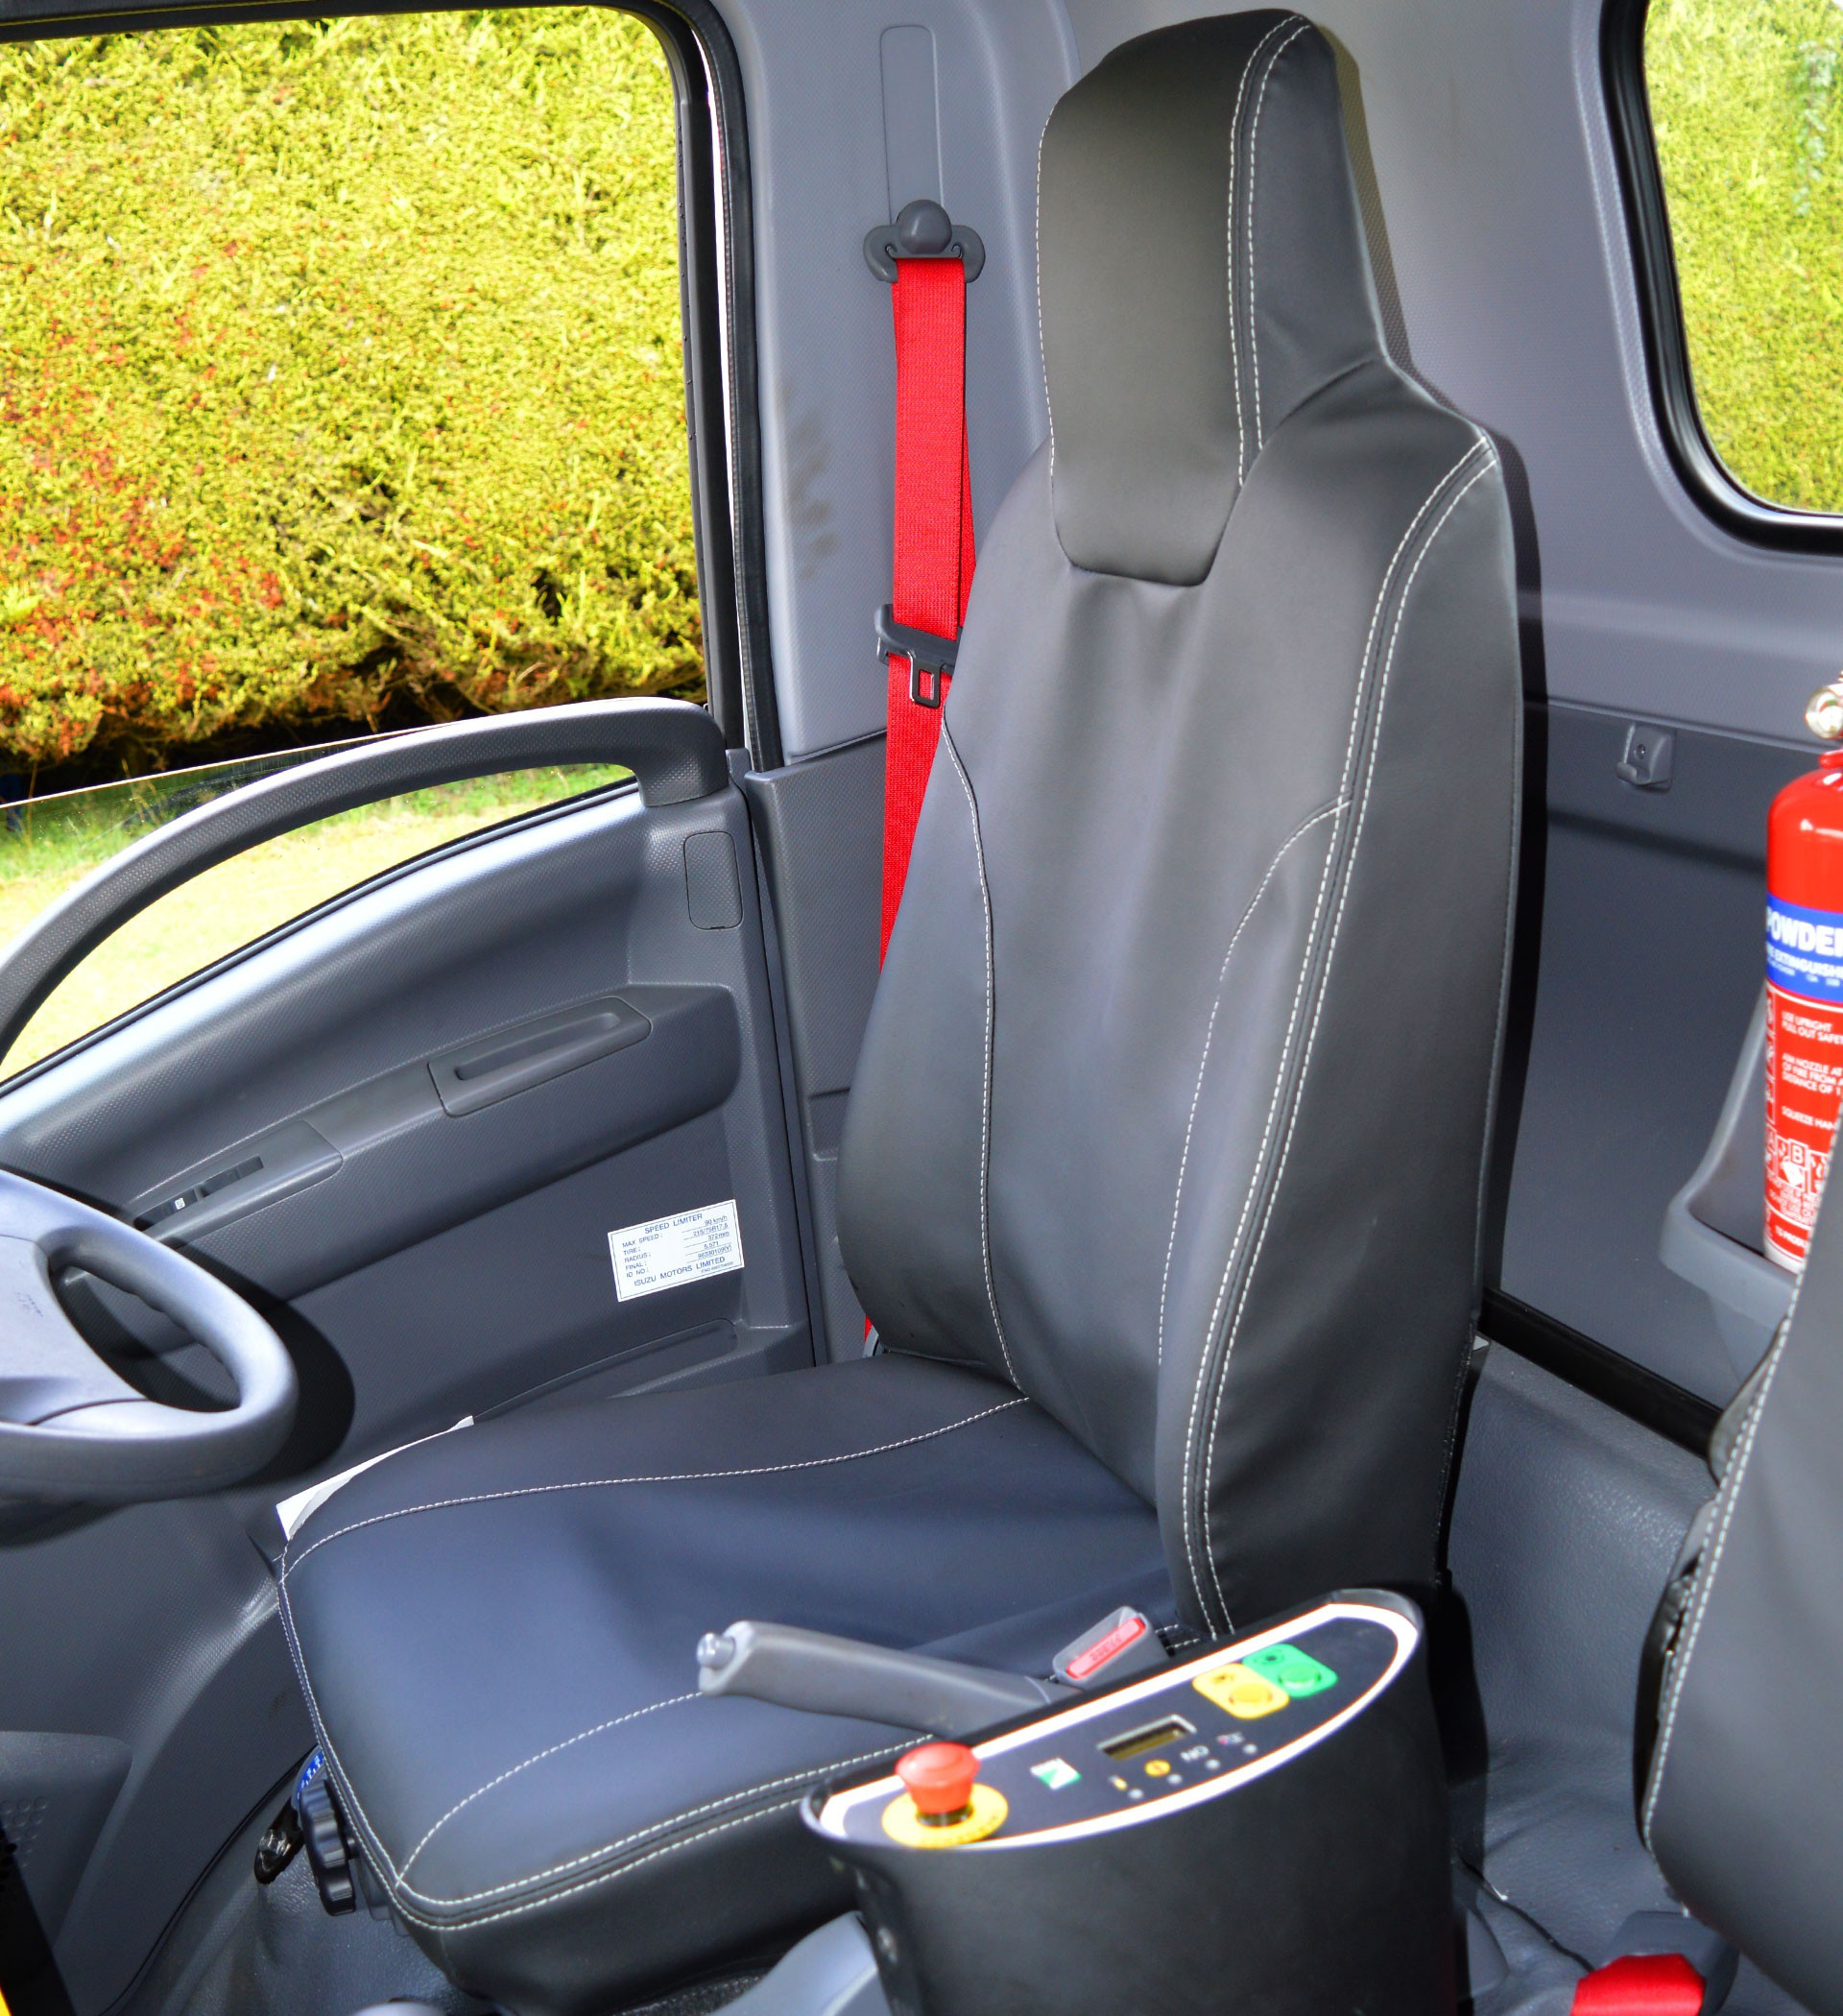 Isuzu N75 Waterproof Seat Covers